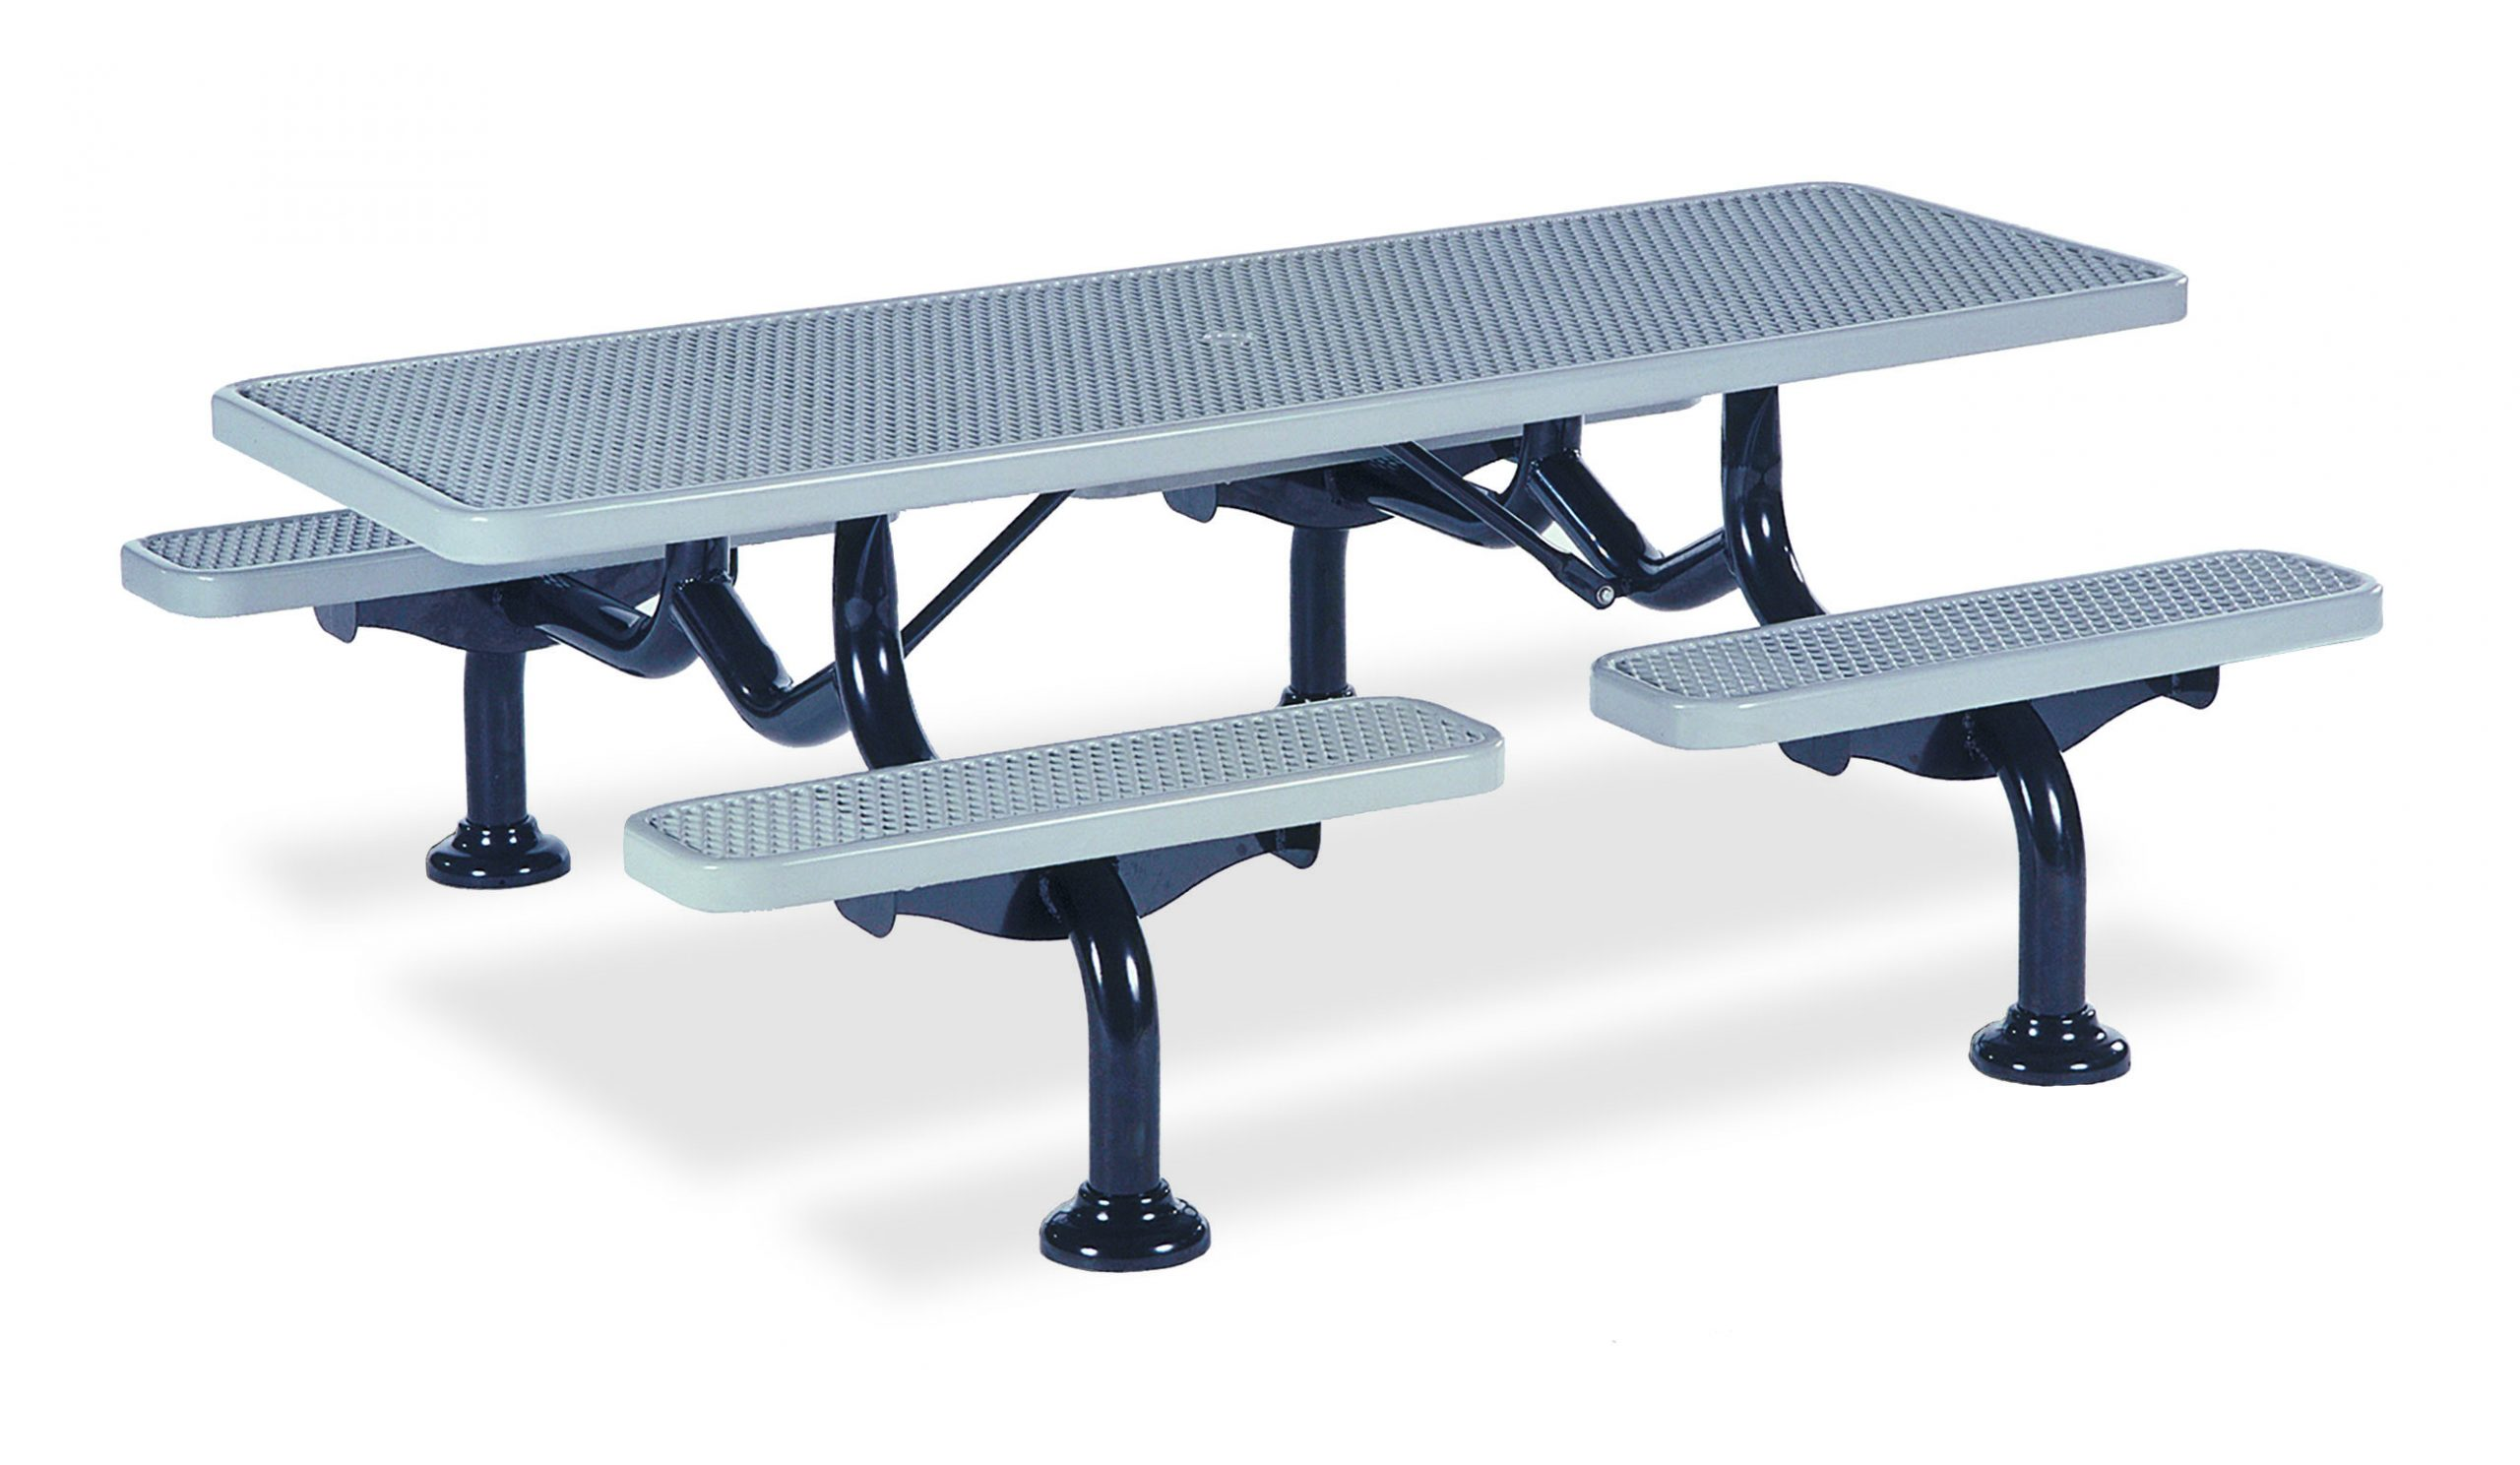 7' Individual Seat Table - Diamond - In-ground (MRSY225D)